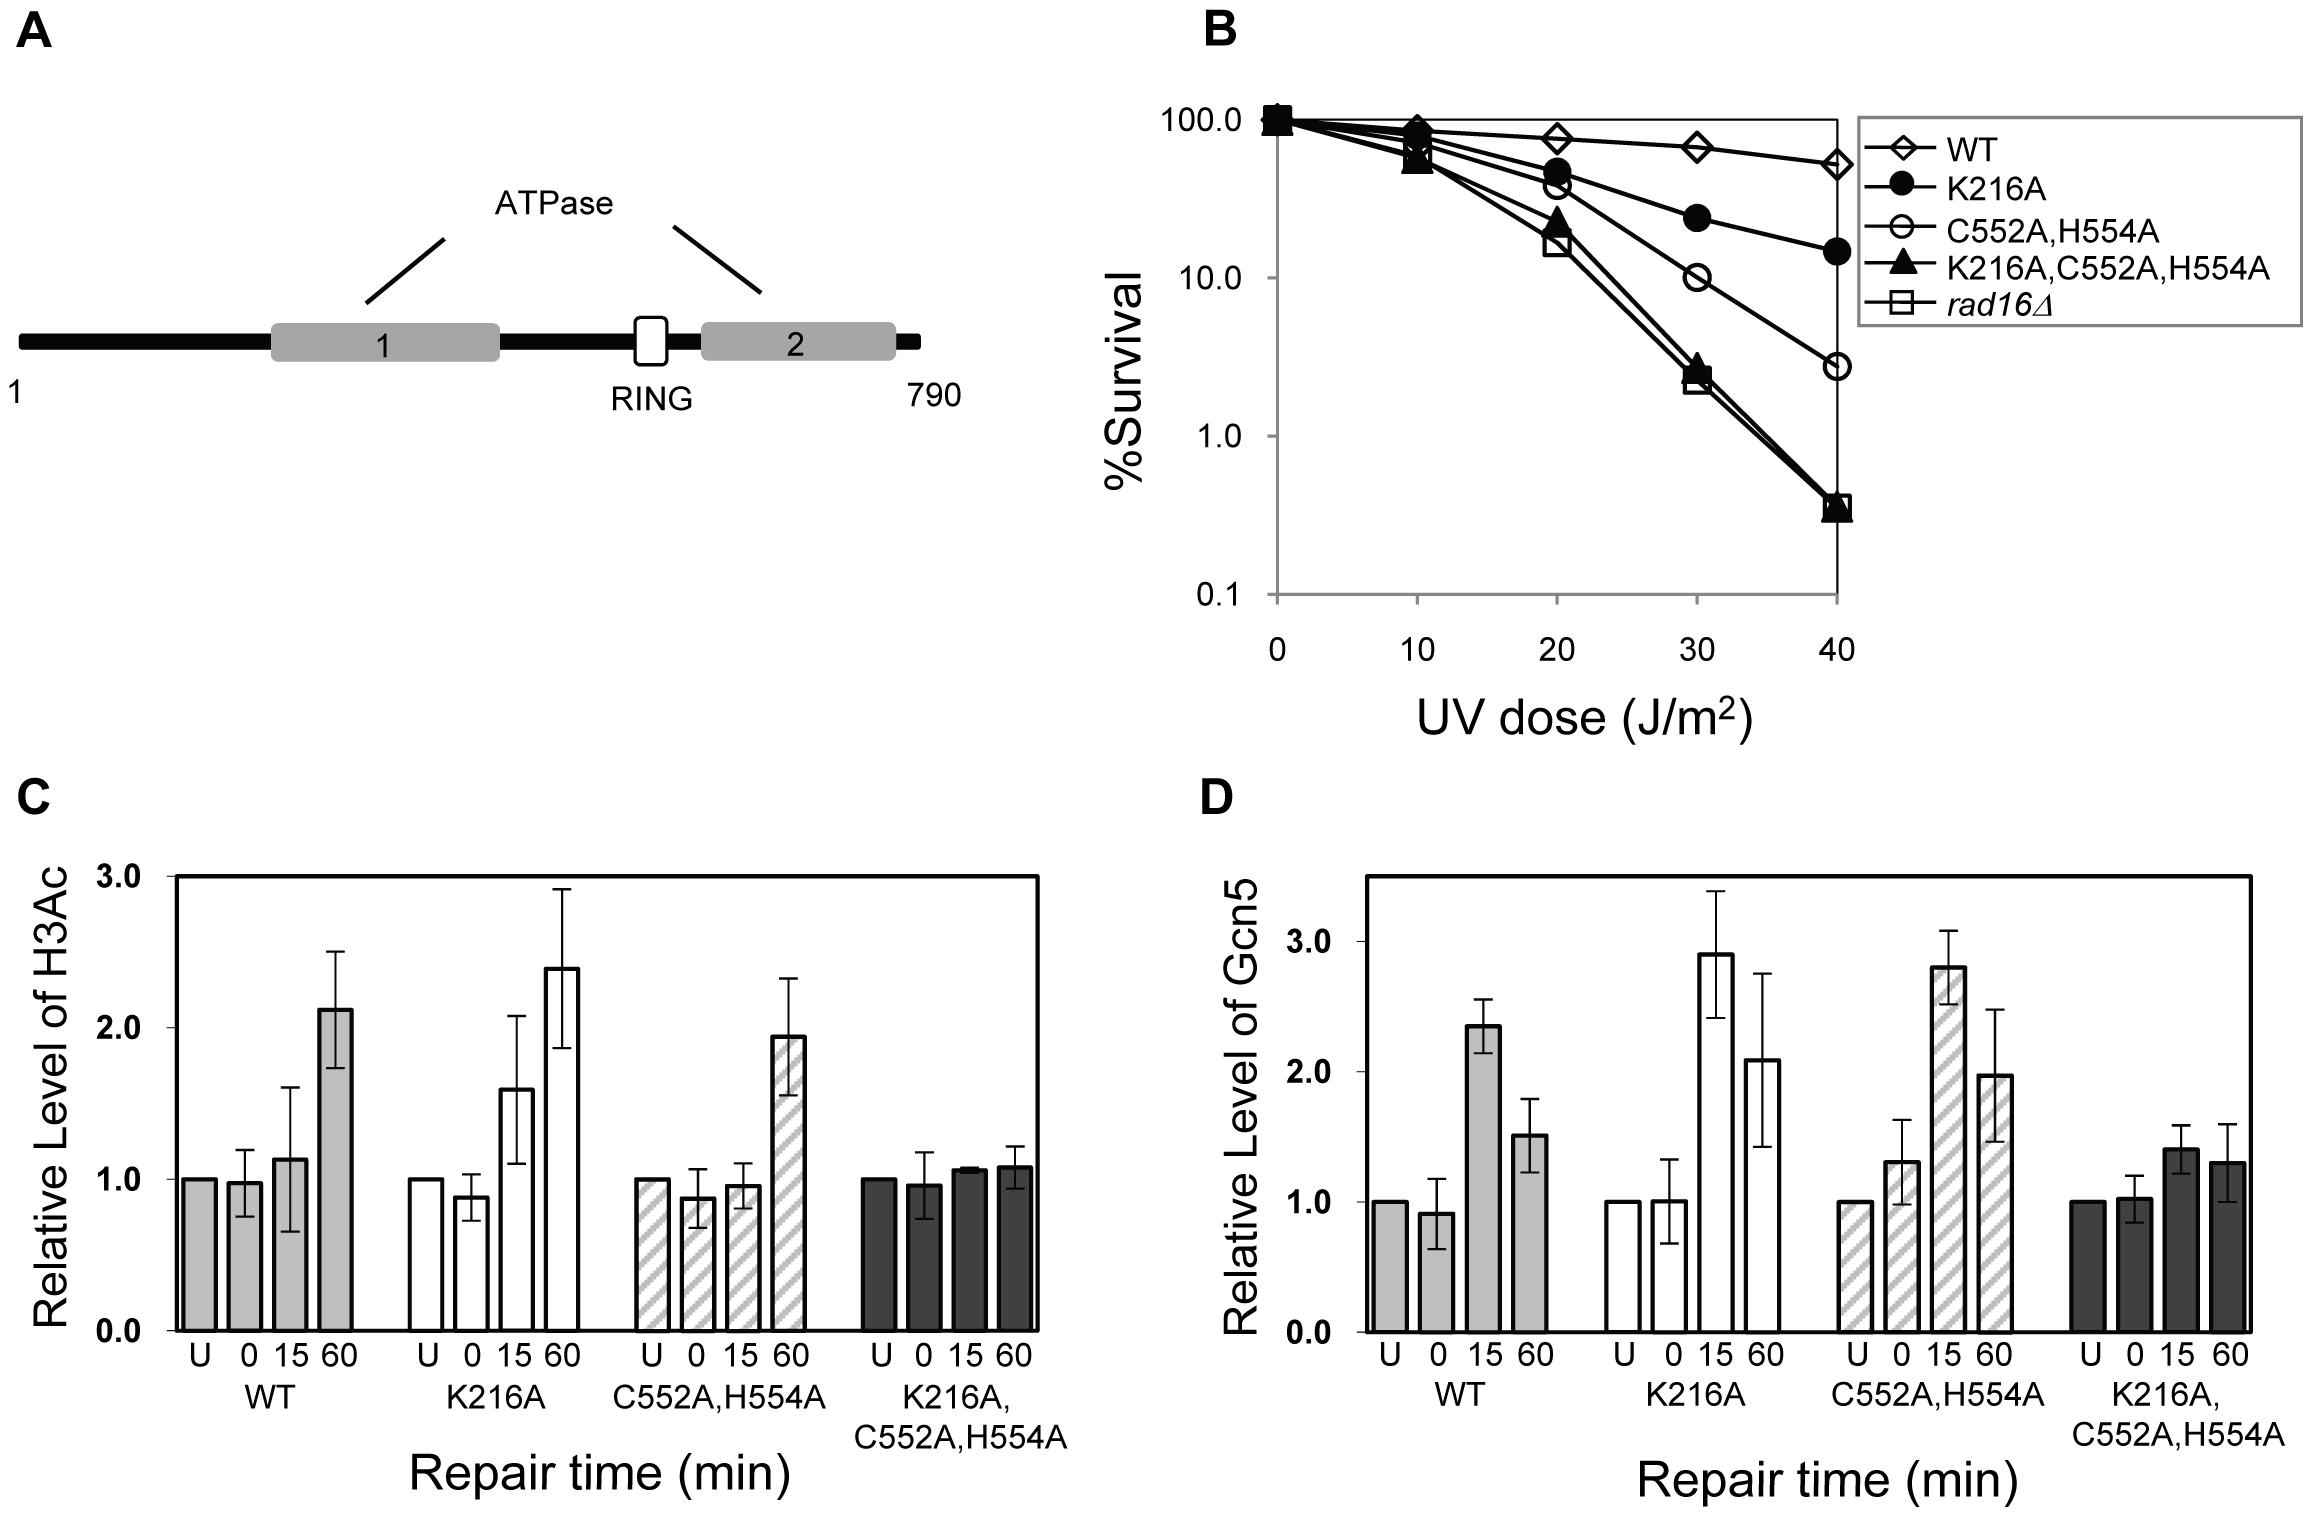 The effect of mutating specific domains in Rad16.